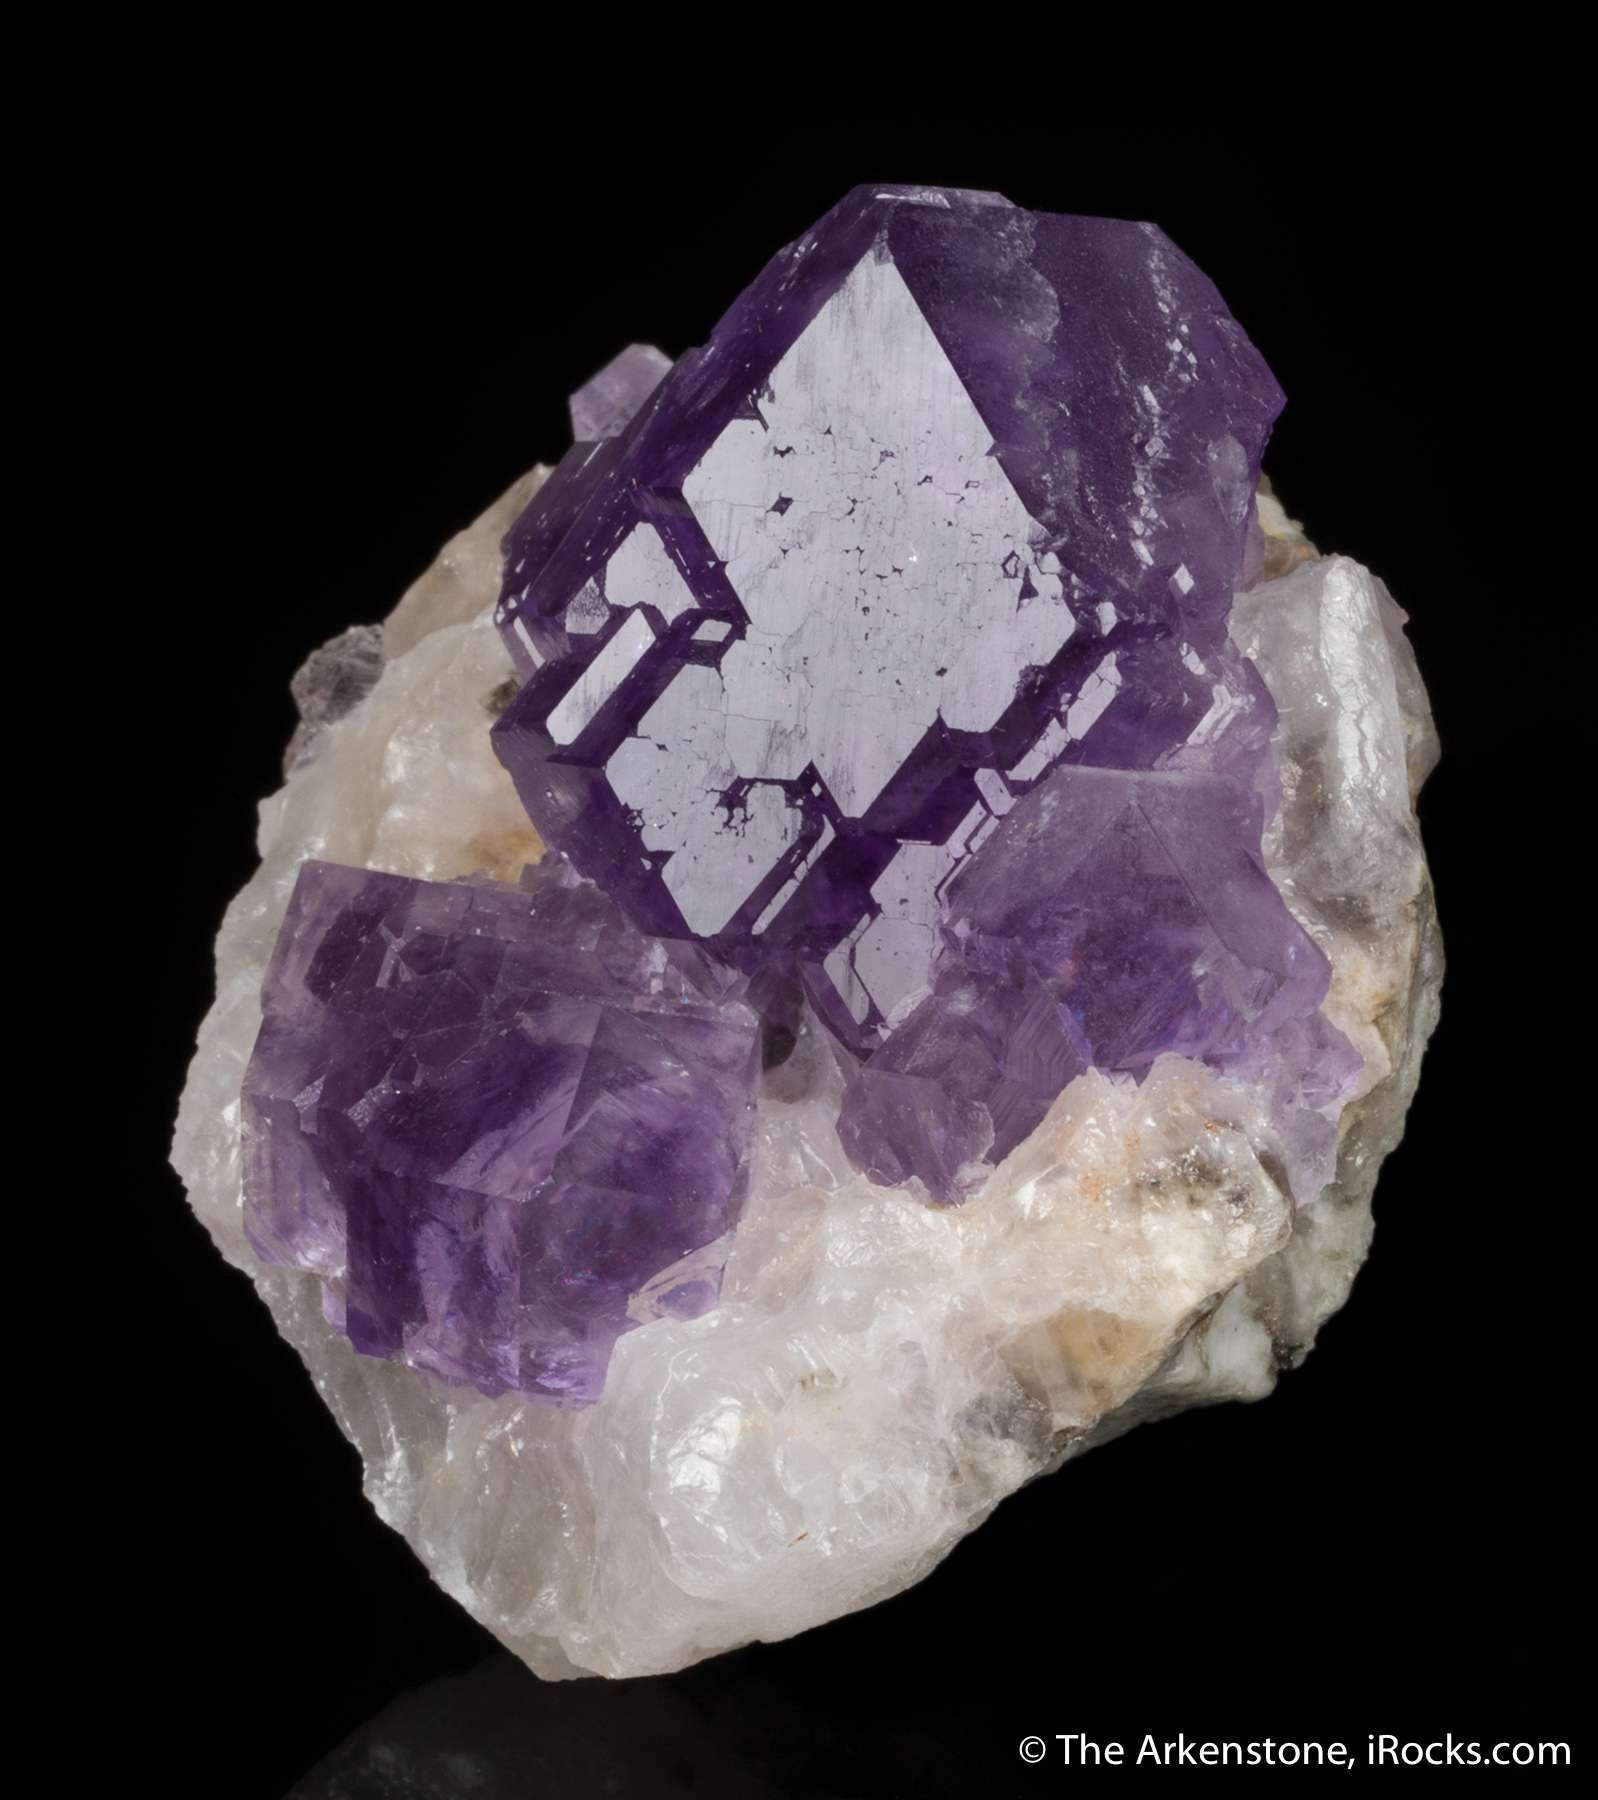 Stunning purple color makes impressive large miniature fluorite